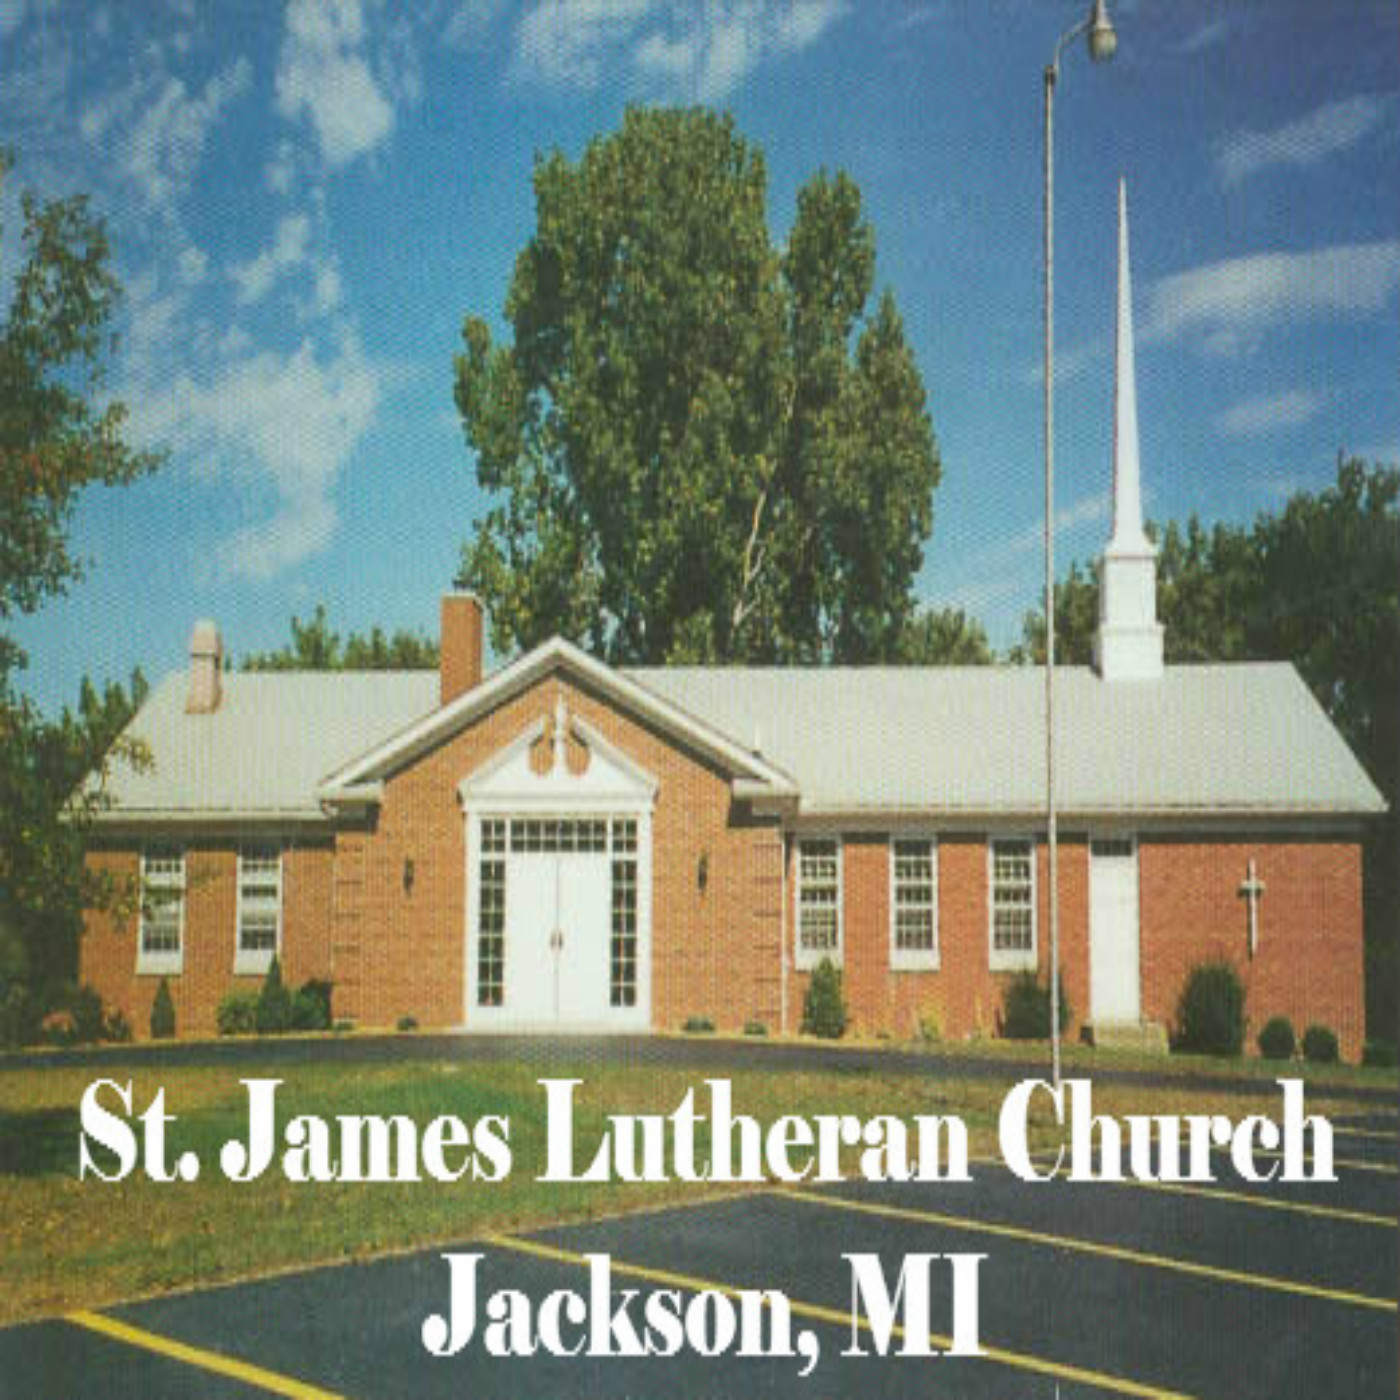 St. James Lutheran Church » » Sermons - St. James Lutheran Church